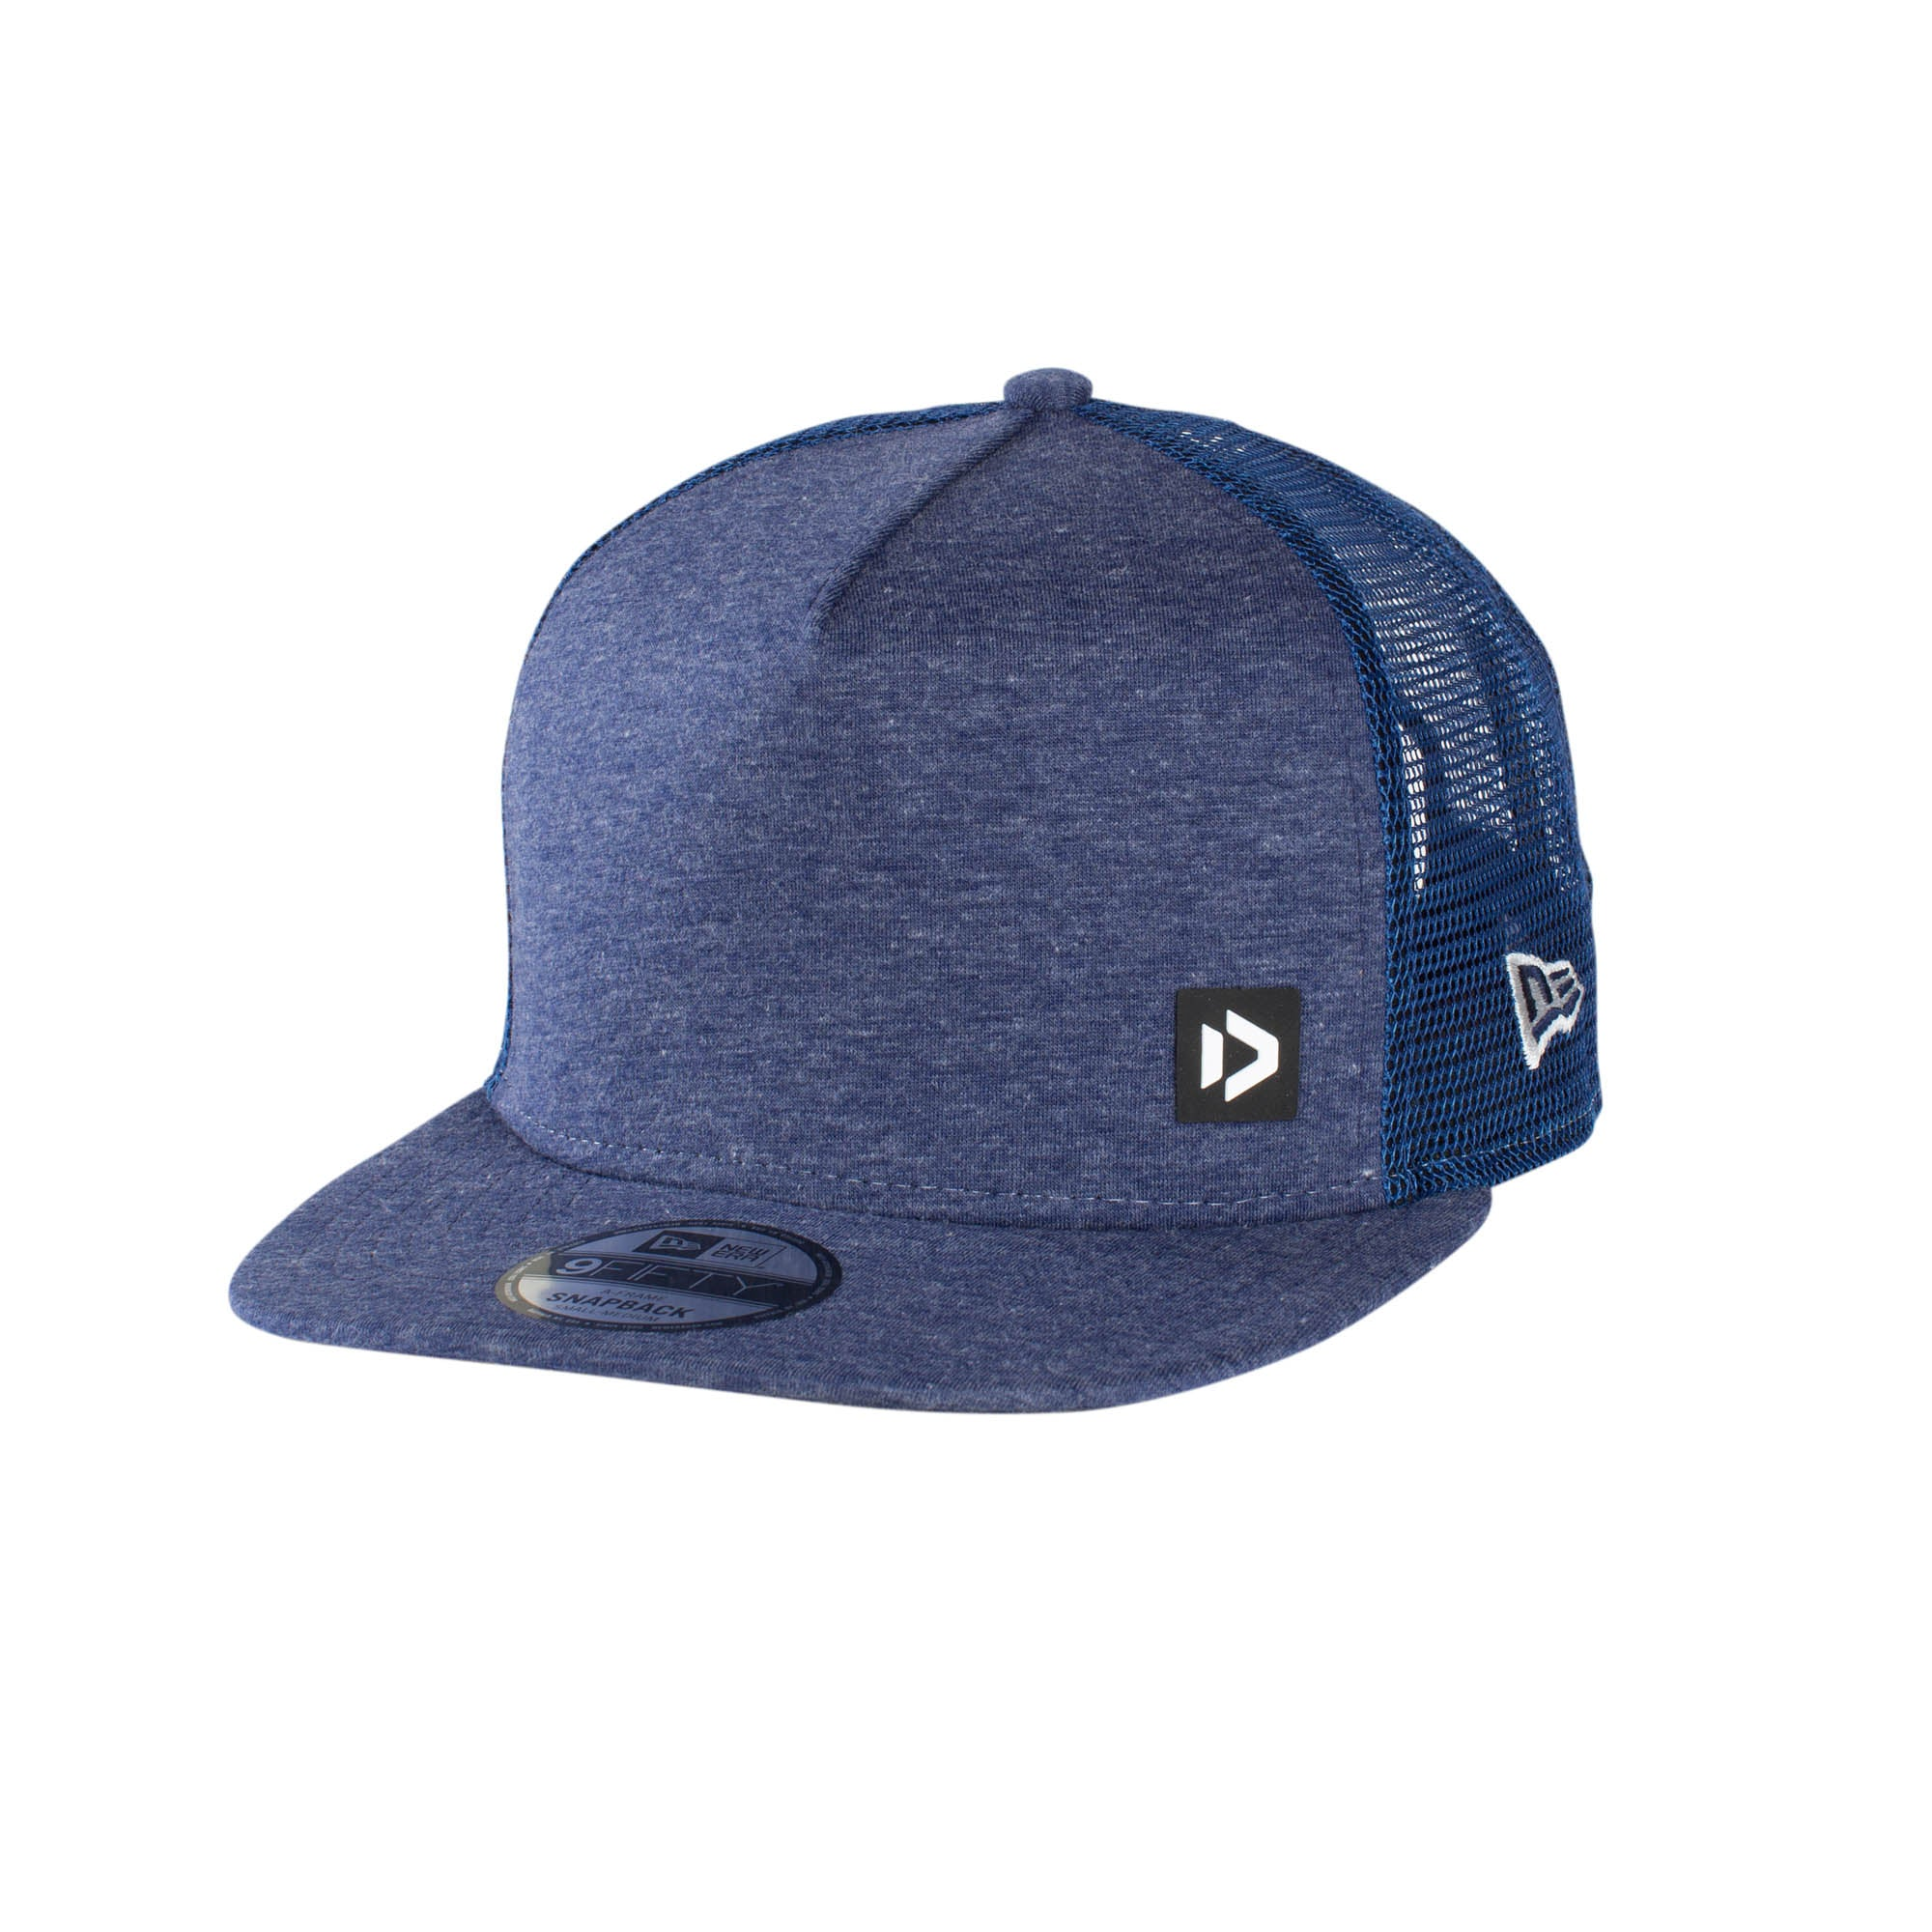 NEW ERA CAP 9FIFTY A-FRAME BUTTON BLUE